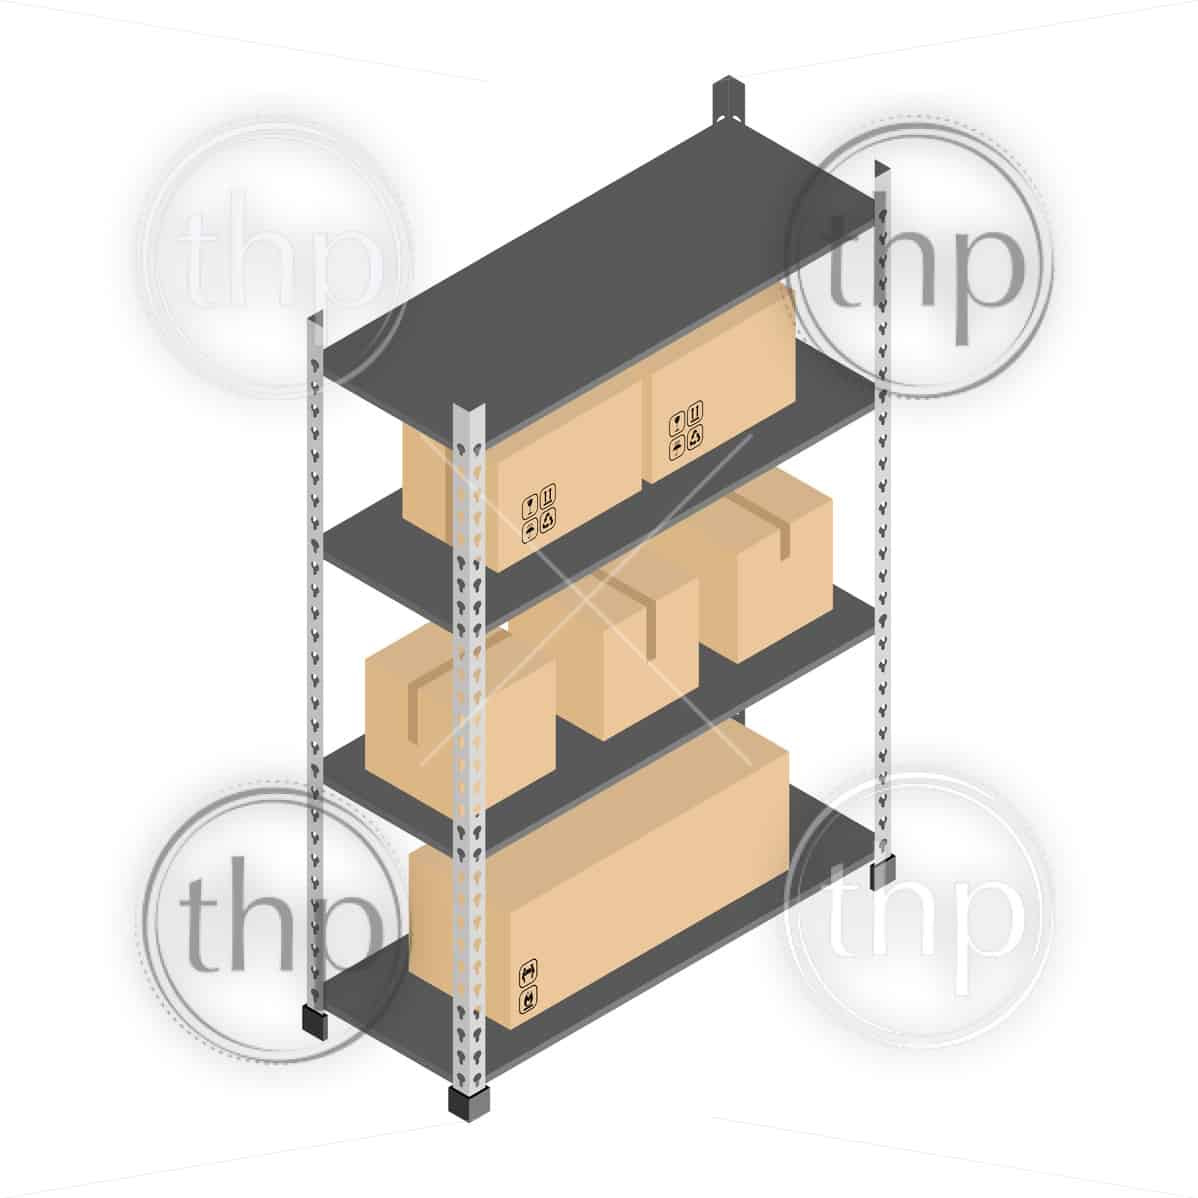 Metal storage shelves with boxes in isometric vector design for self storage or warehouse concept